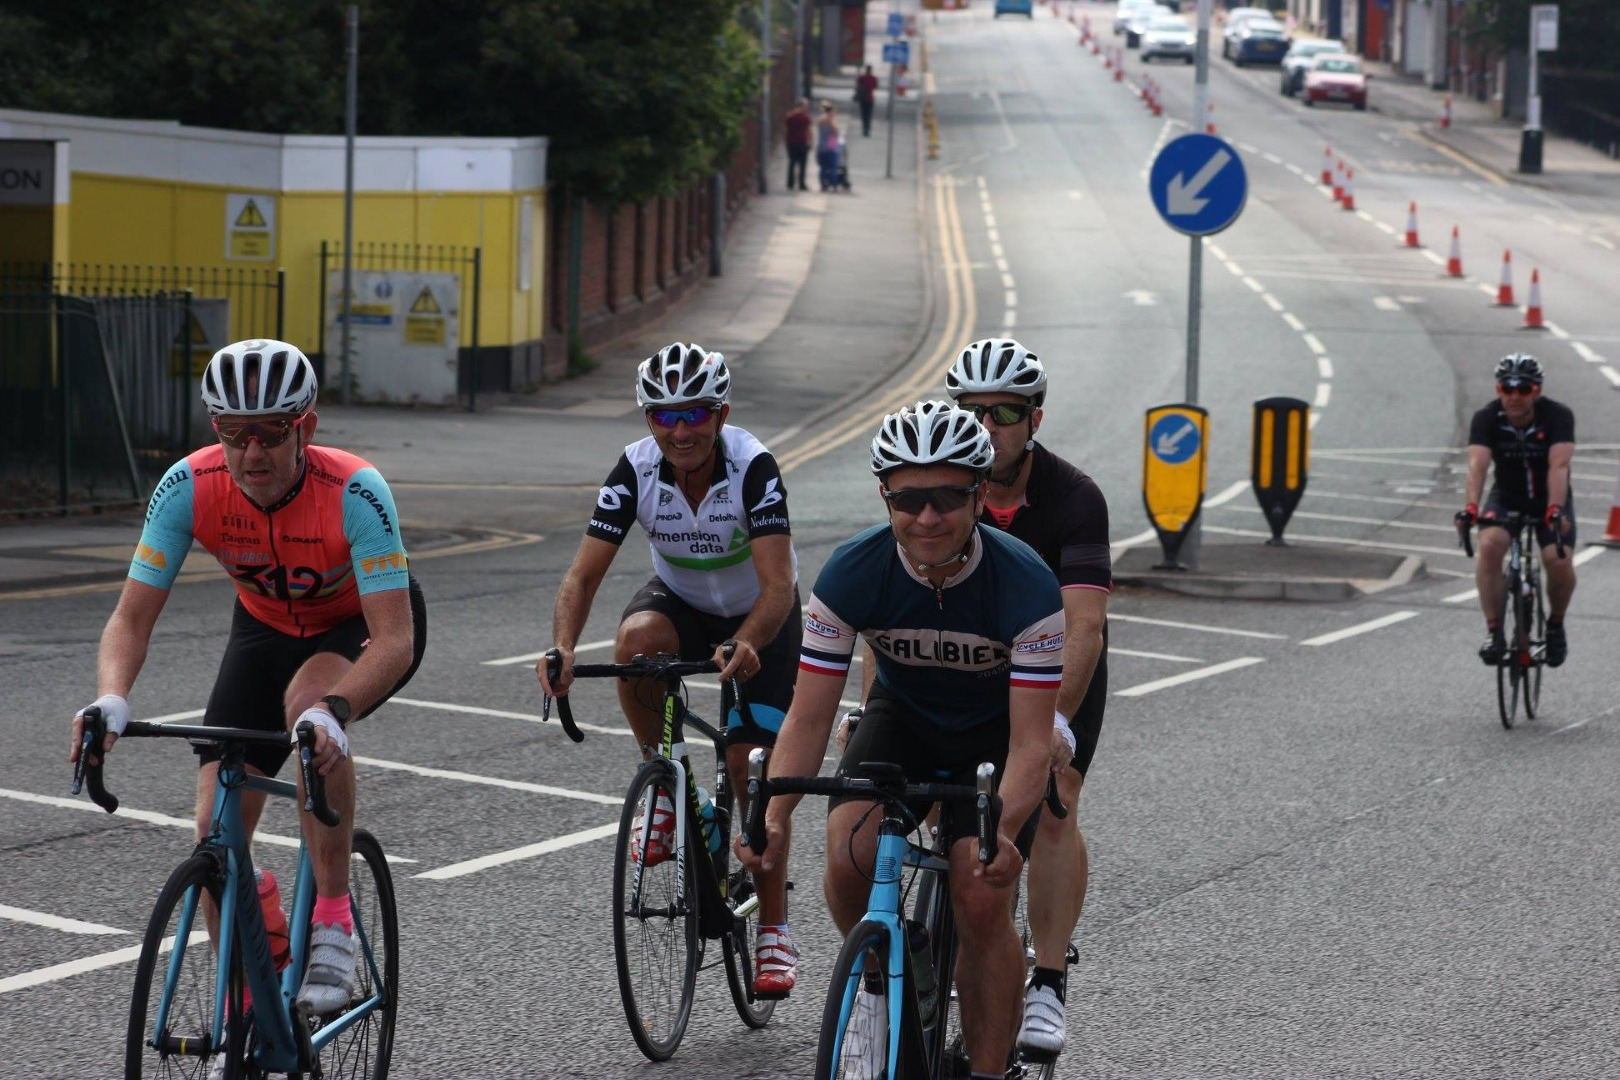 IRONMAN UK passes through Horwich!